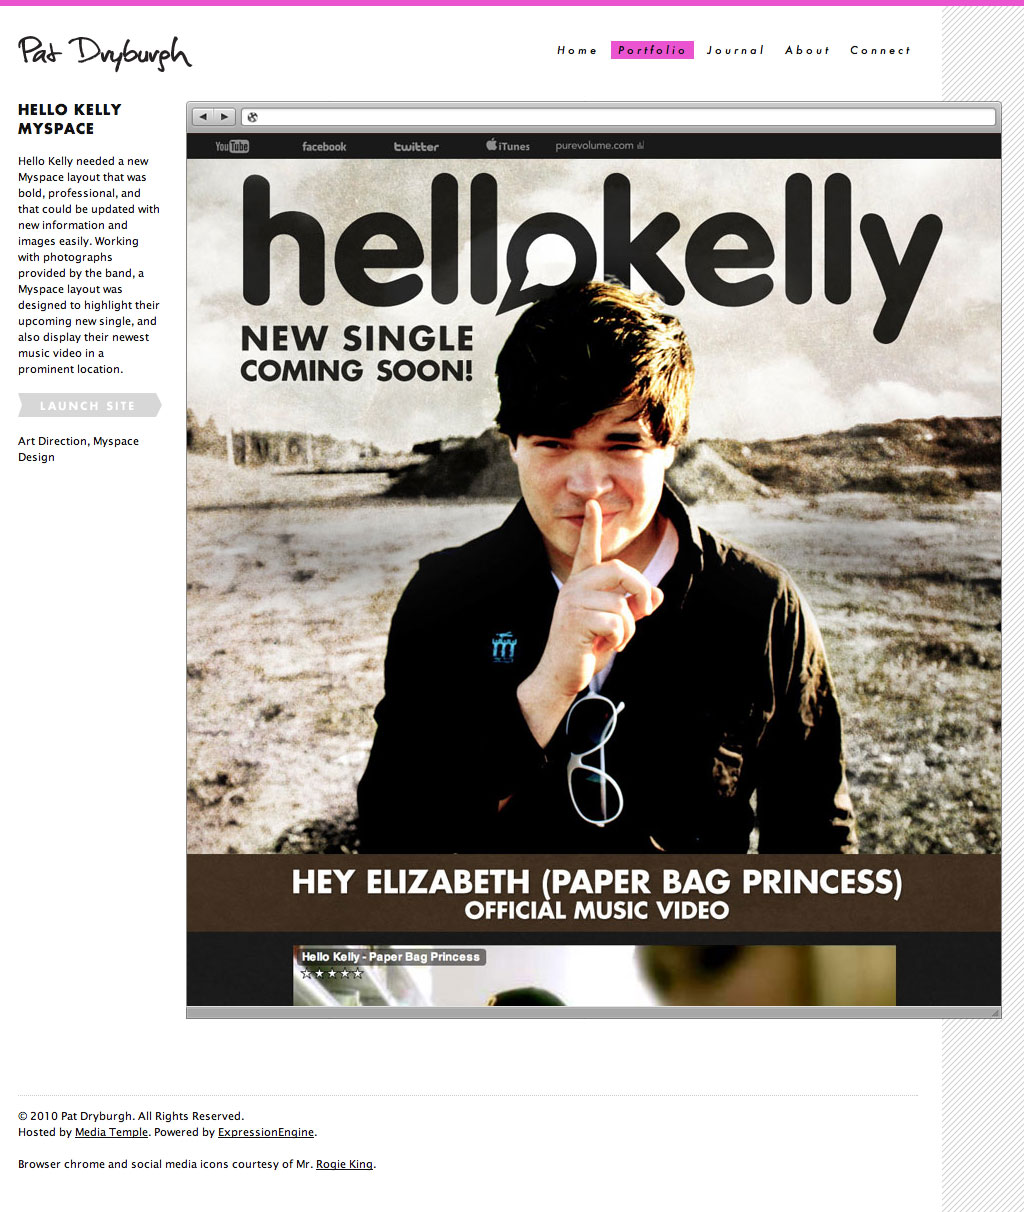 Hello-Kelly-MySpace-_-Portfolio-_-Pat-Dryburgh